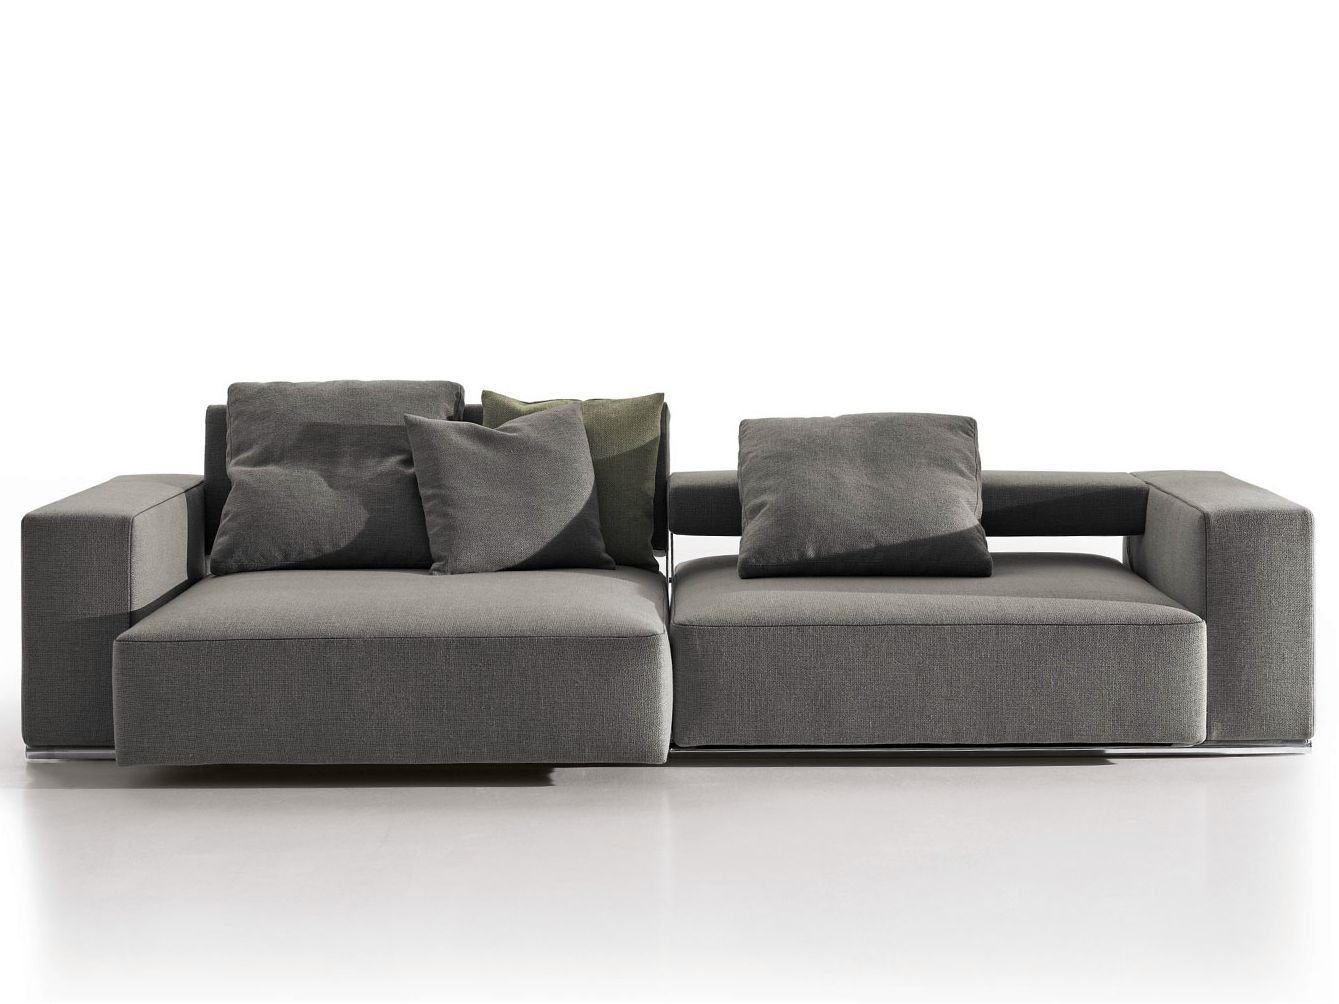 ANDY \'13 Sofa by B | furniture | Pinterest | Fabric sofa, Italia ...